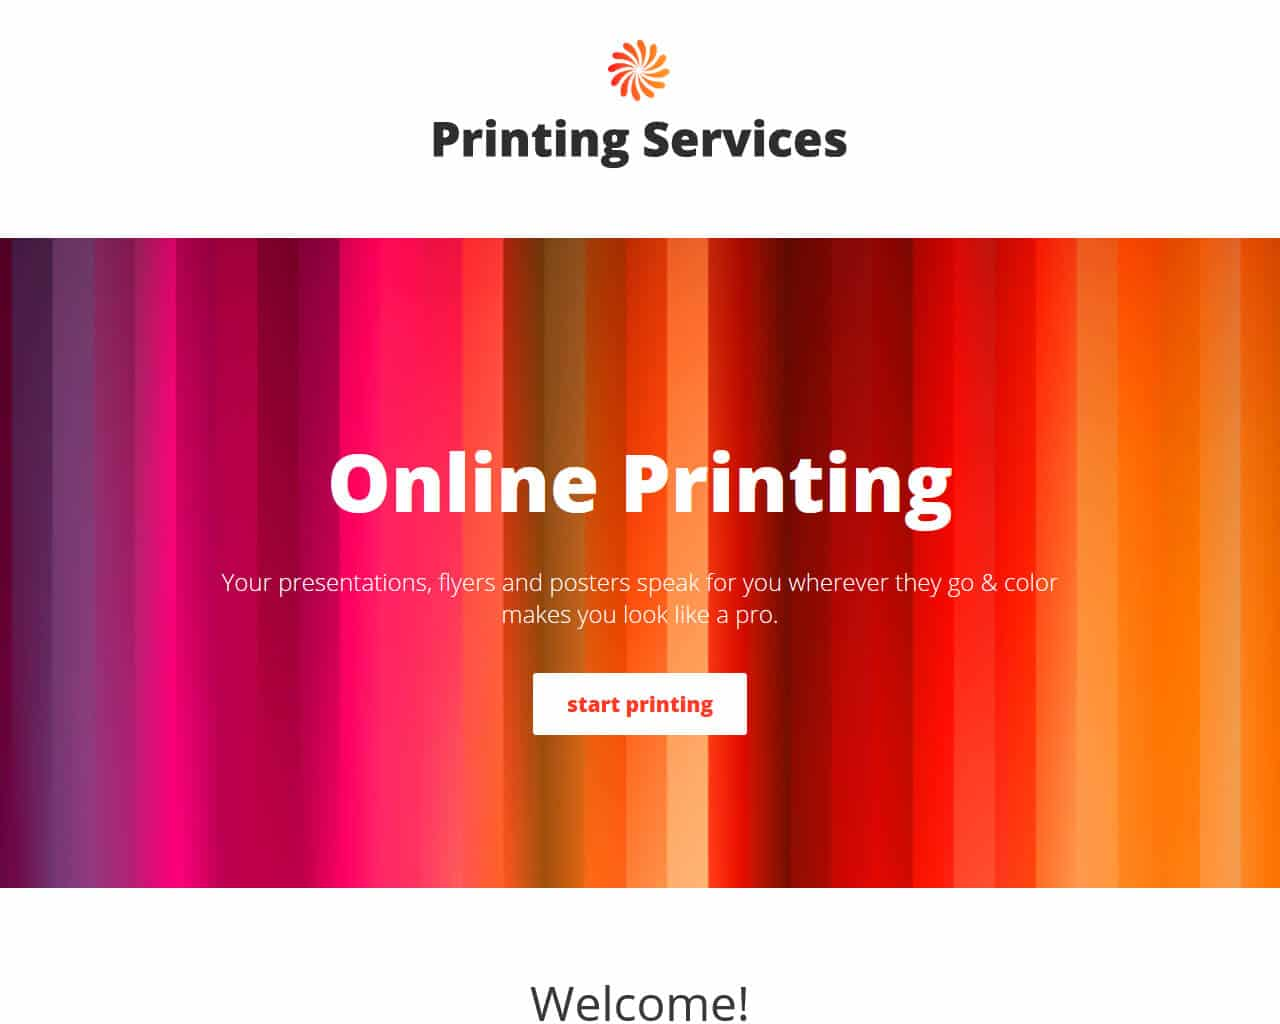 Printing Services Website Template